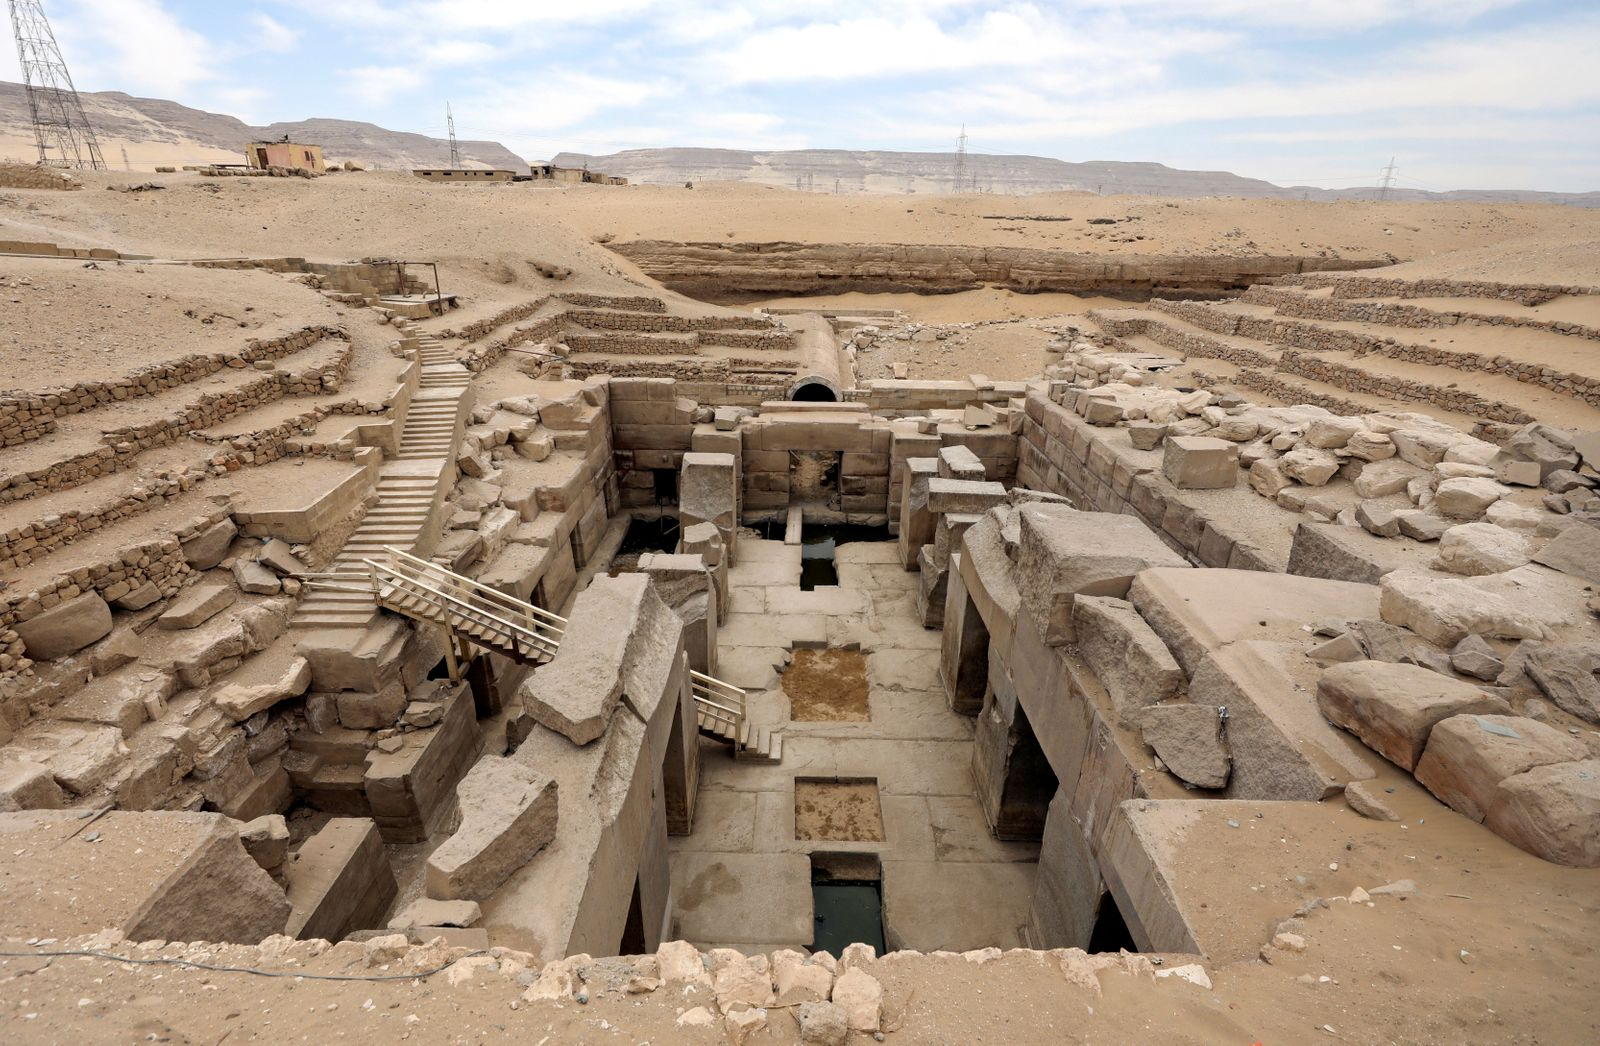 A general view of the new groundwater lowering project at Osirion, behind the Temple of Seti I, Abydos archeological site, Sohag